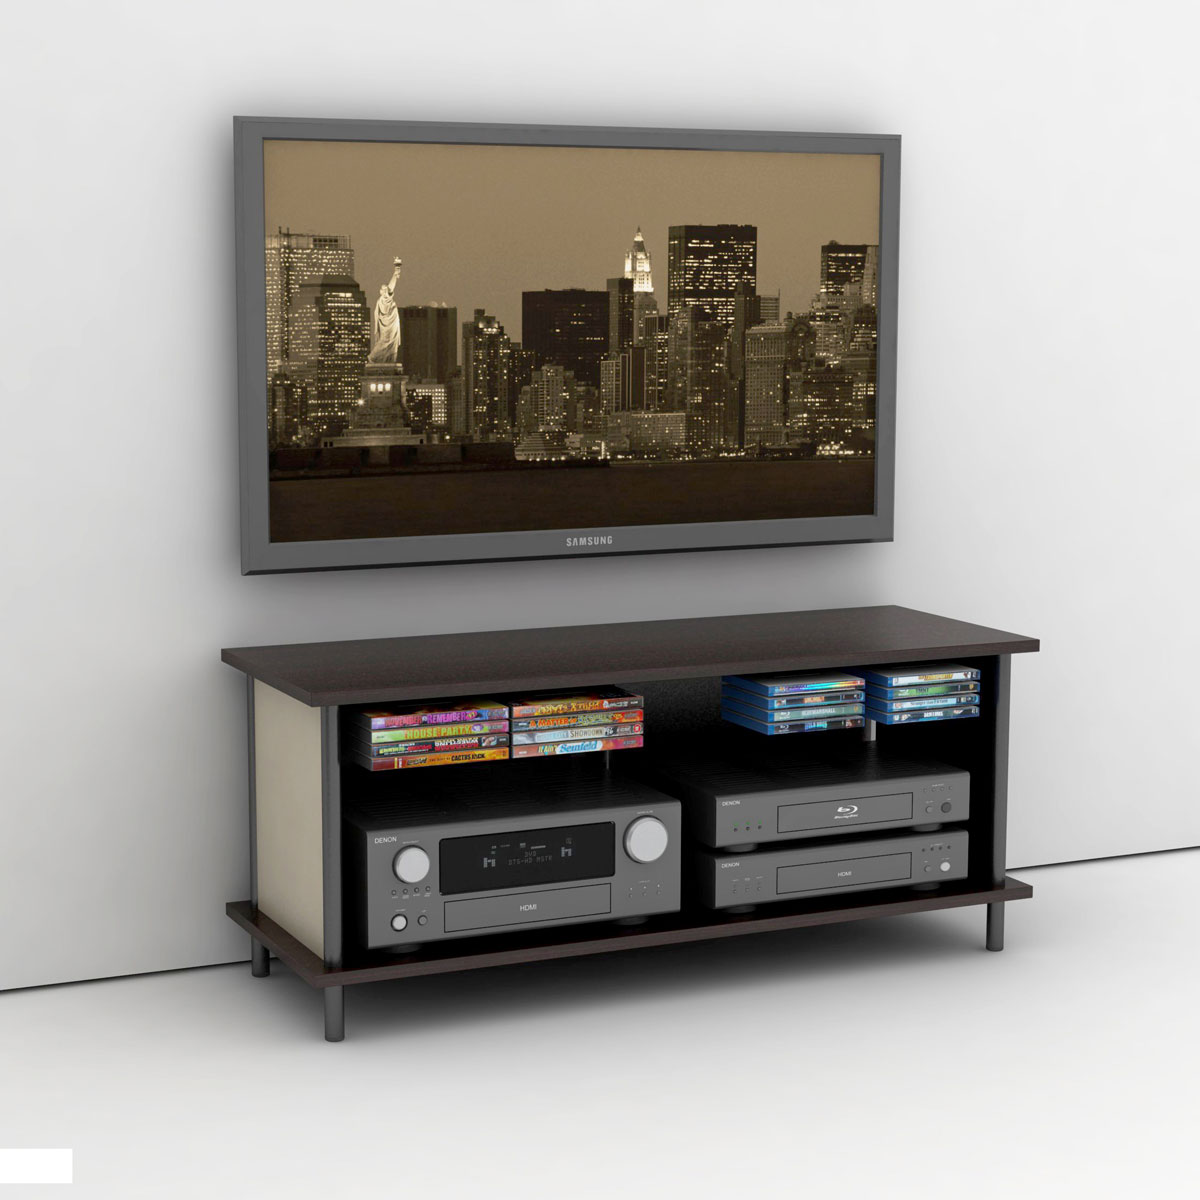 Simple Wall Mount TV Stand on Clean White Flooring in Minimalist Room with White Painted Wall